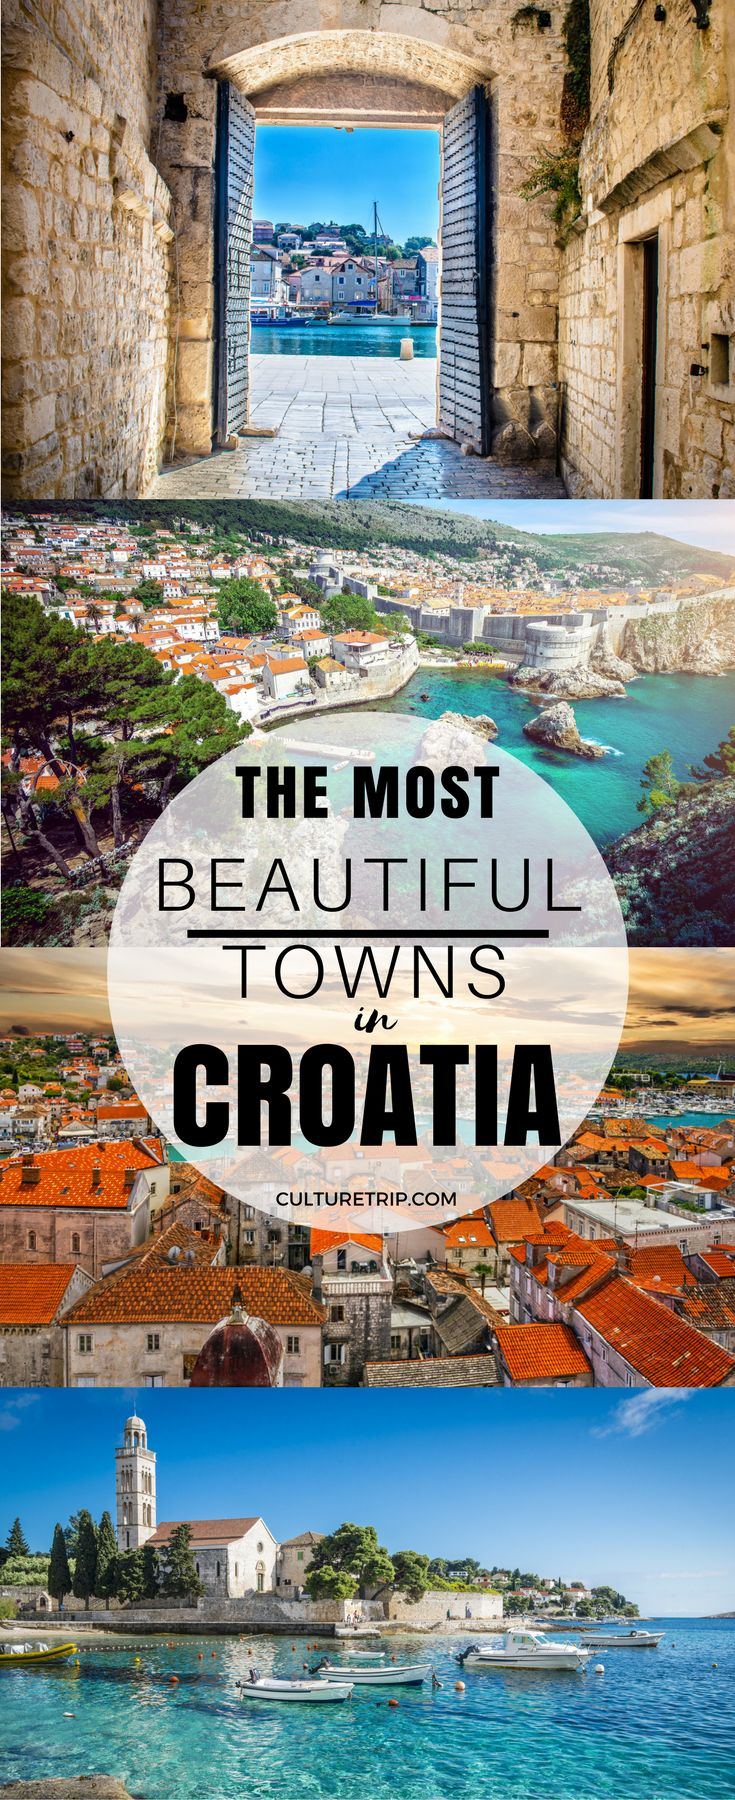 The 10 Most Beautiful Towns in Croatia|Pinterest: @theculturetrip